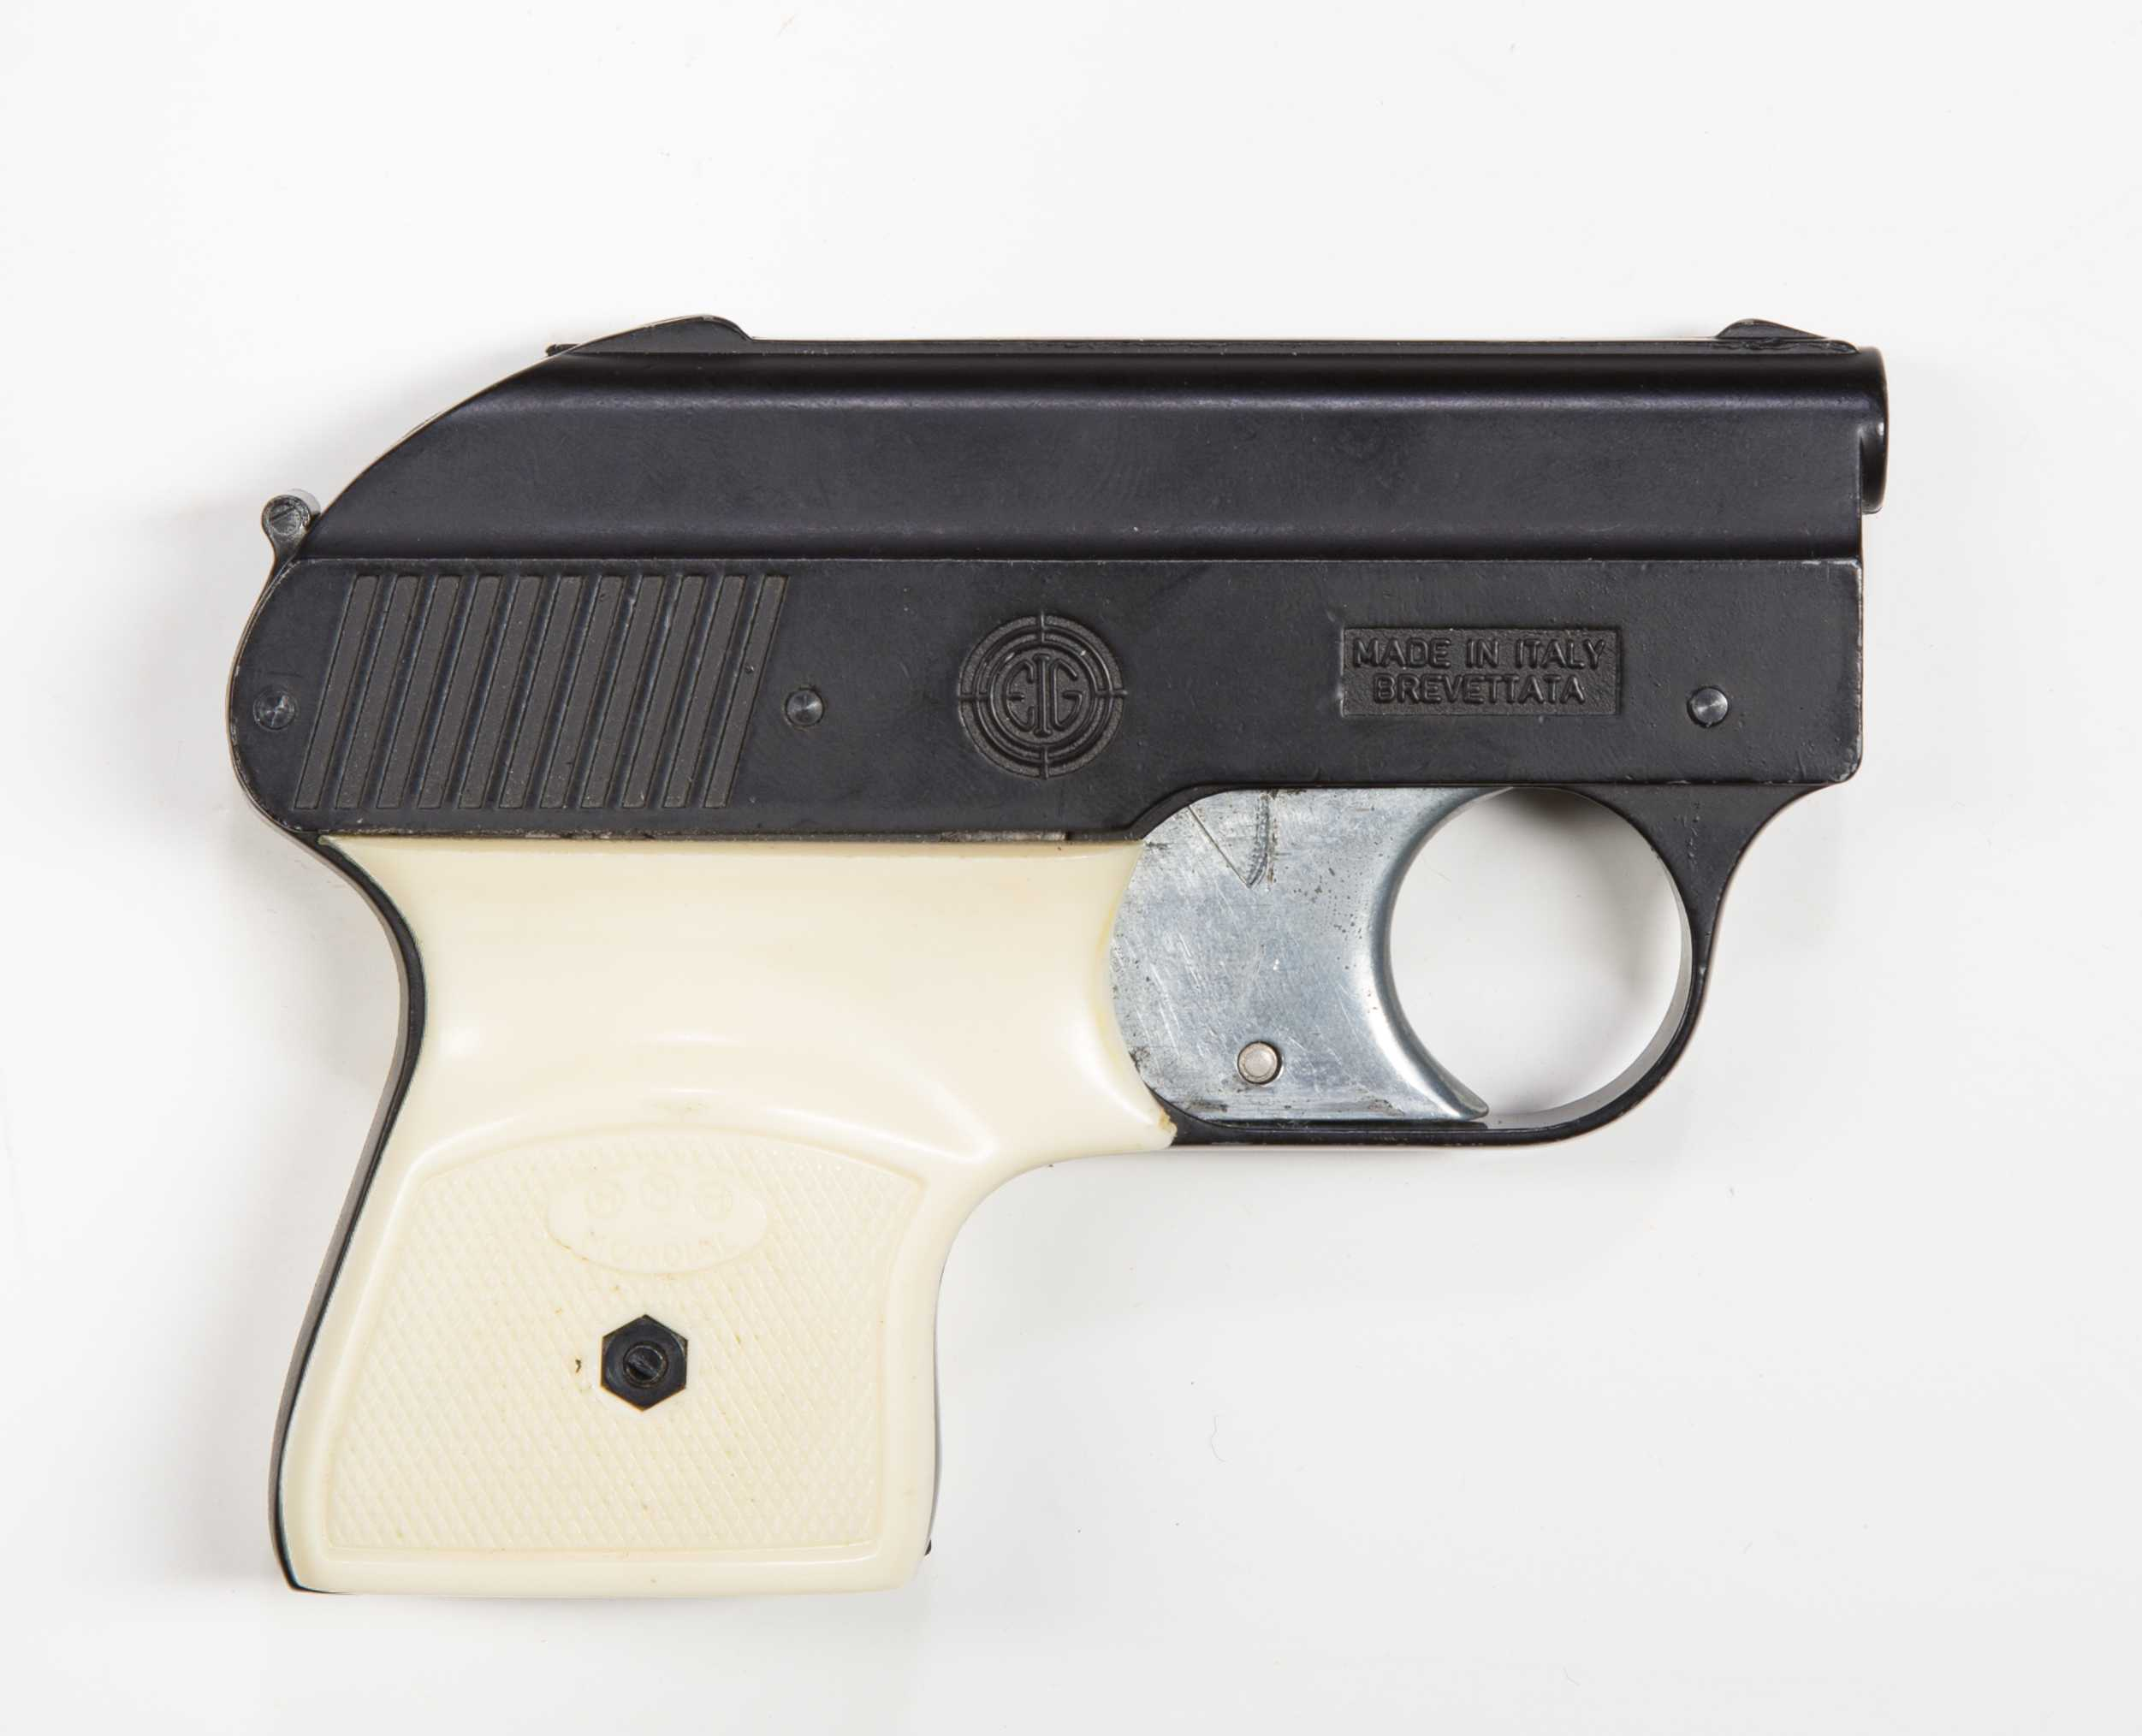 Mondial Brevettata  22 auto pistol, model 1900, works with  22 cal